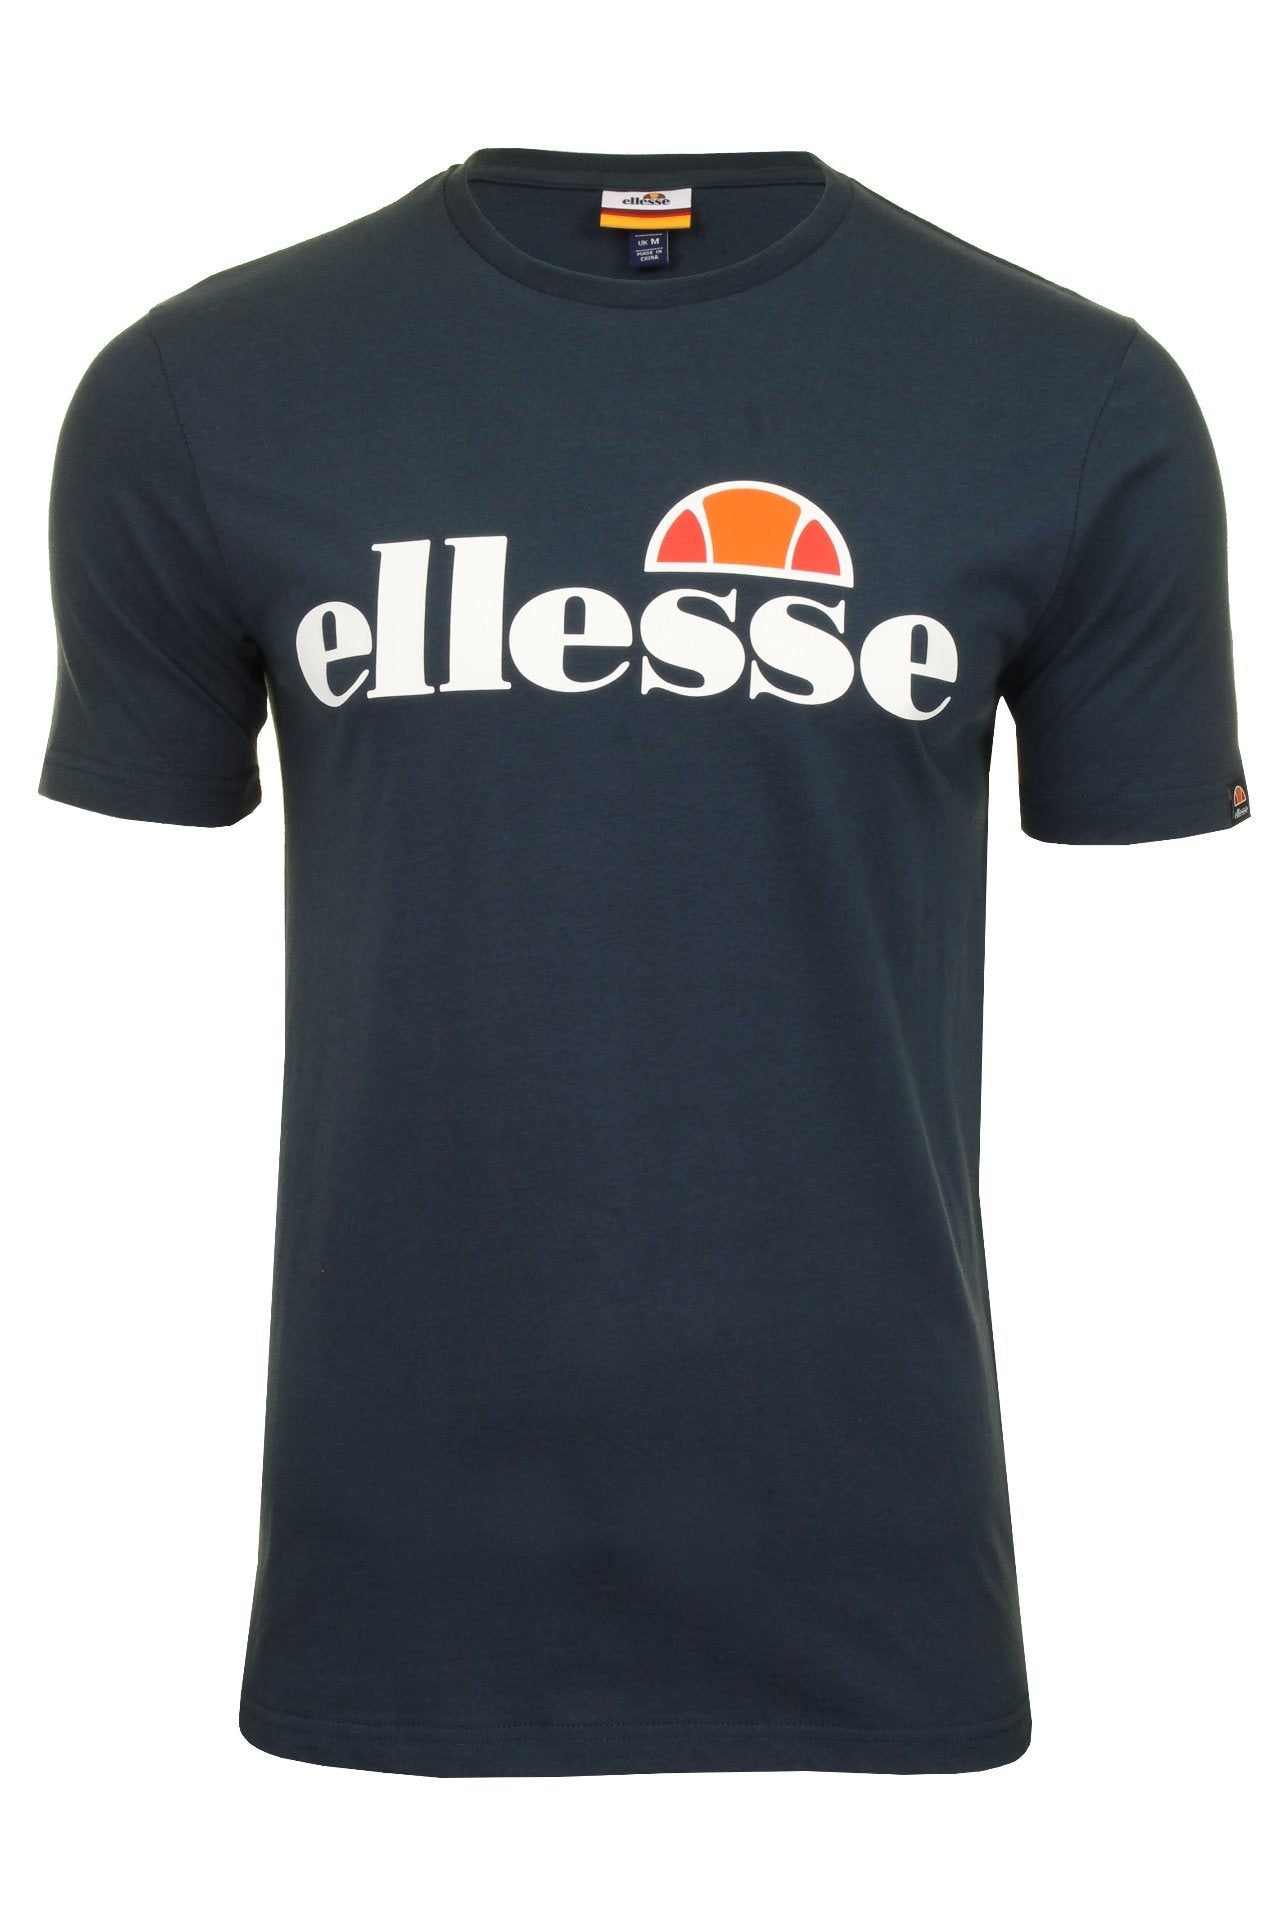 Ellesse Mens Logo Front Crew Neck T-Shirt 'PRADO' - Short Sleeved_01_Shc07405_Navy